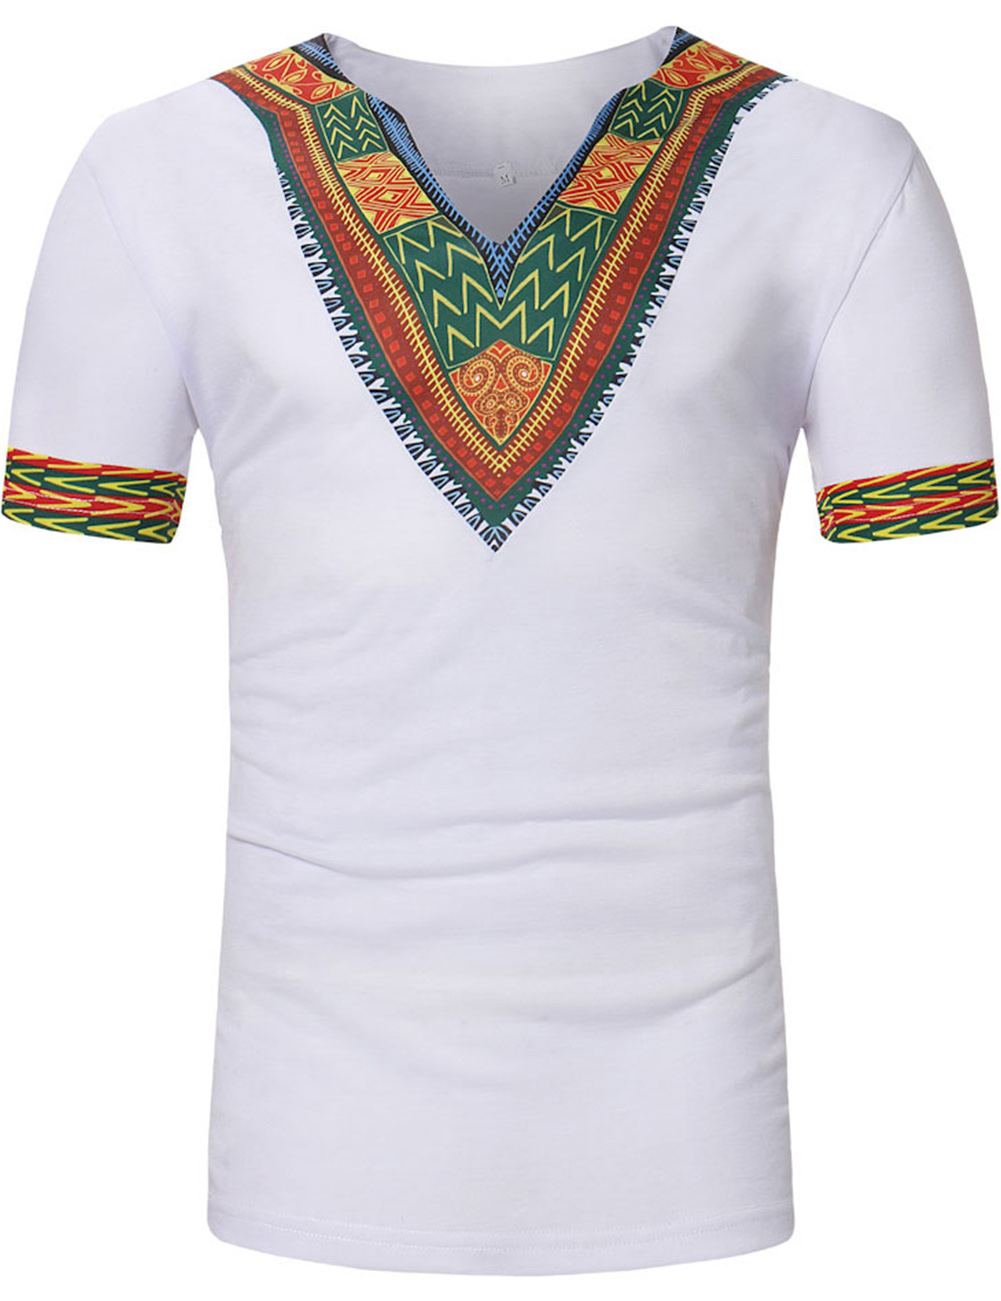 //cdn.affectcloud.com/hexinfashion/upload/imgs/African_Clothing/African_Men_T-shirt/T190098-WH1/T190098-WH1-201911055dc1339306c25.jpg